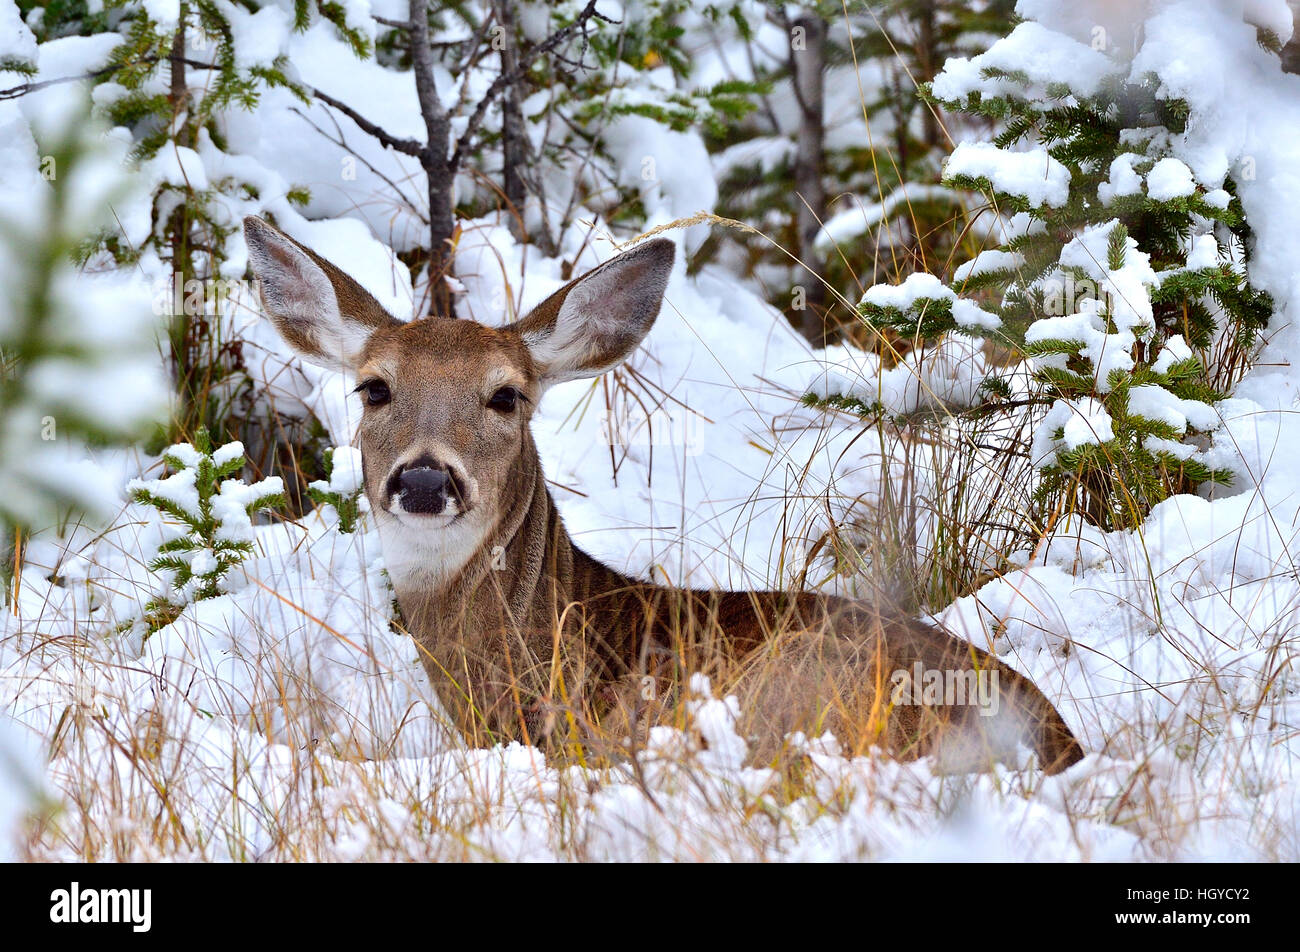 A  White-tailed doe deer{Odocoileus virginianus}  lying in the fresh snow - Stock Image